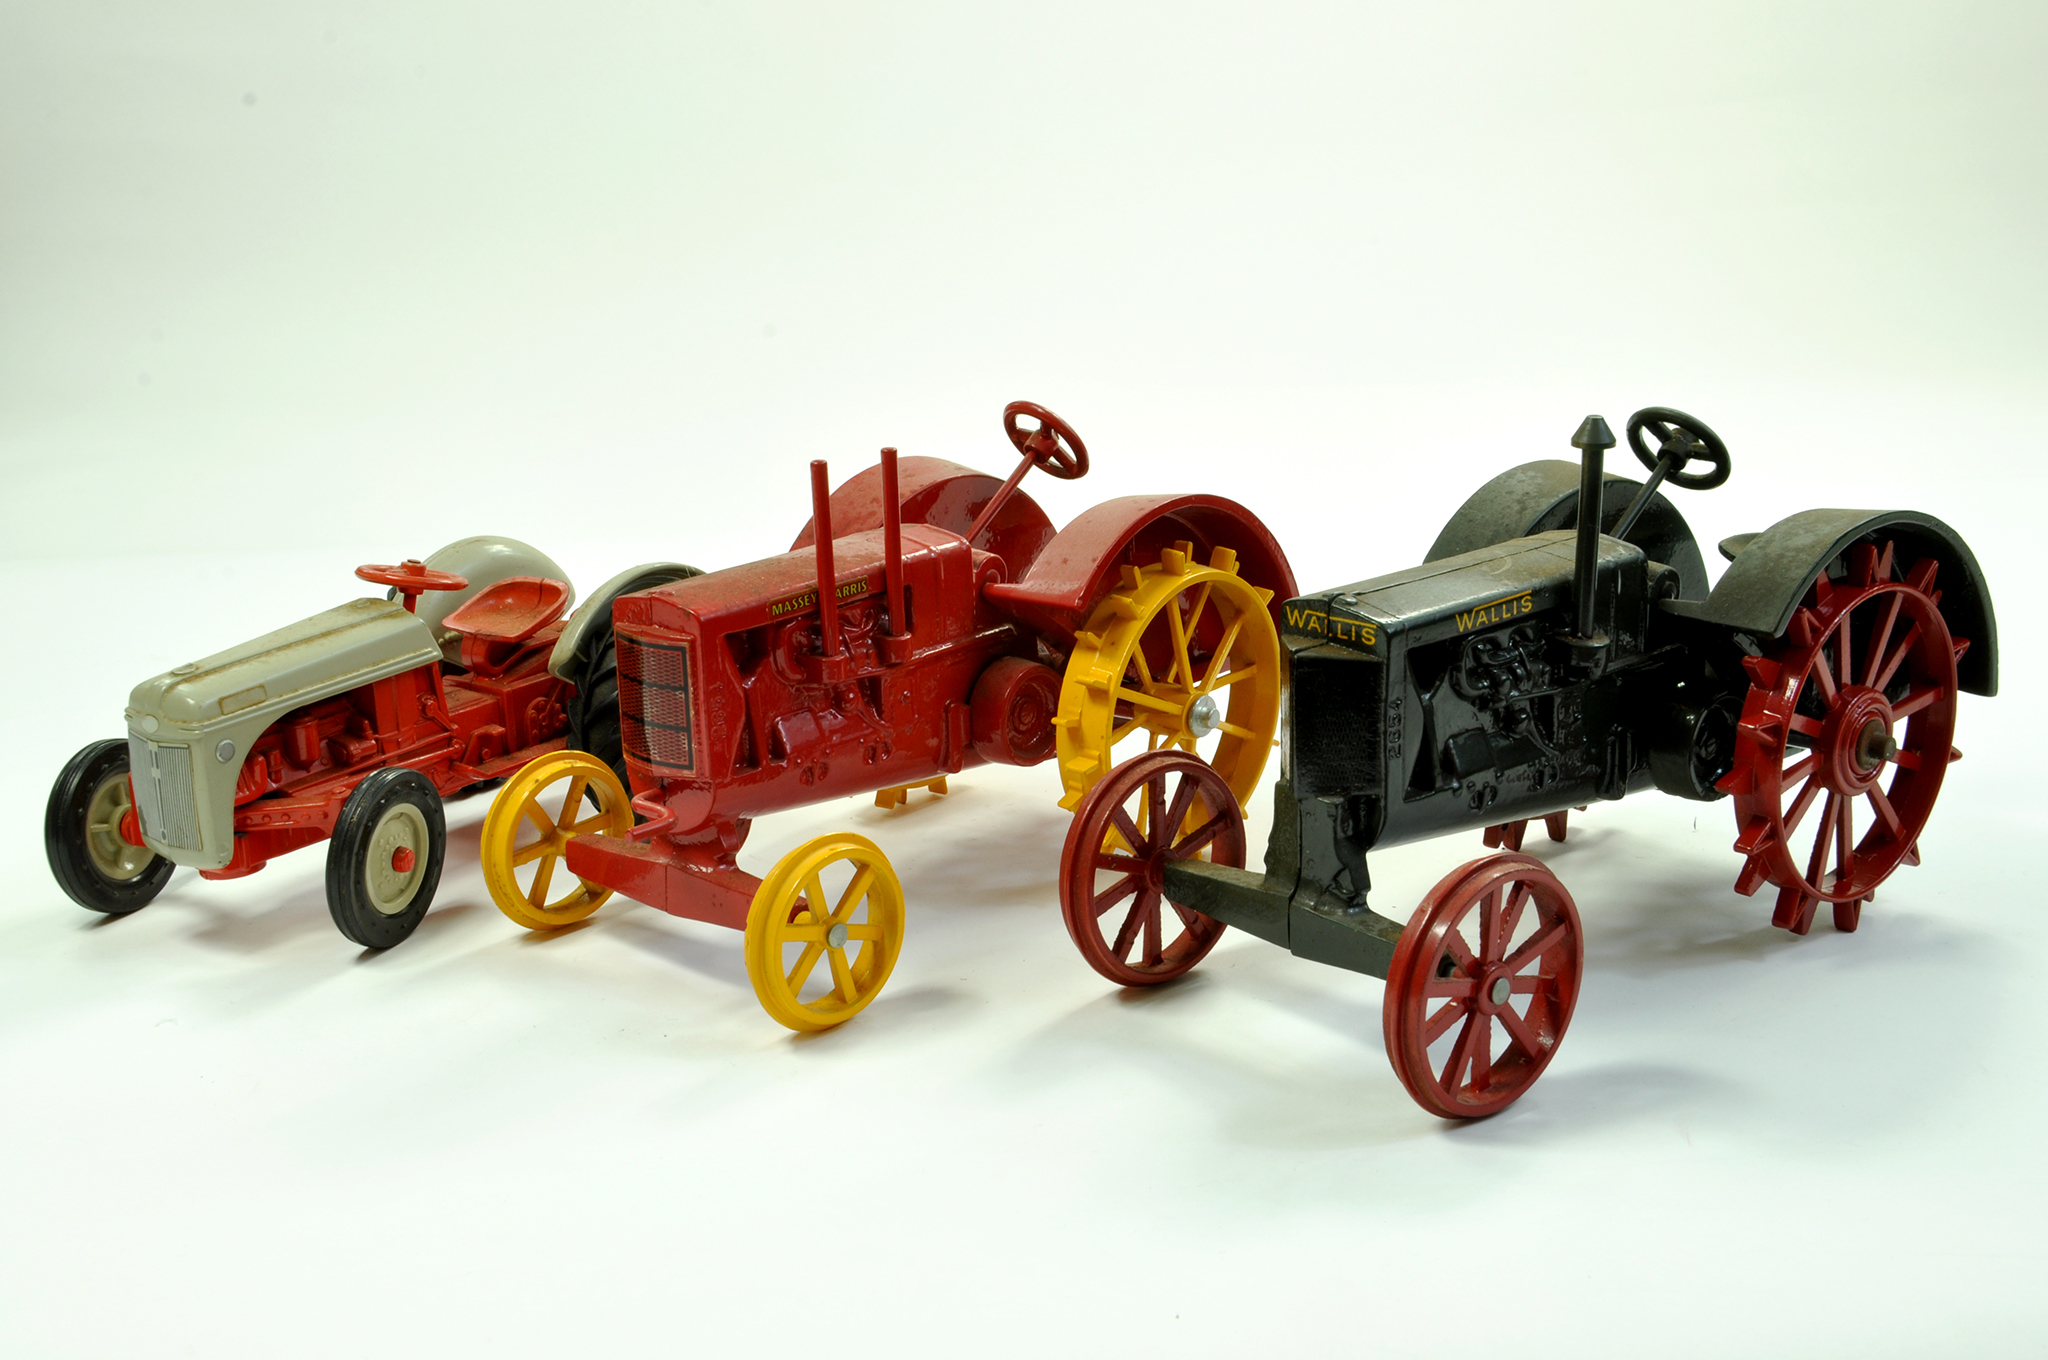 Lot 33 - Scale Models 1/16 Vintage Wallis Tractor plus Massey Harris and a vintage Ford Tractor. Generally